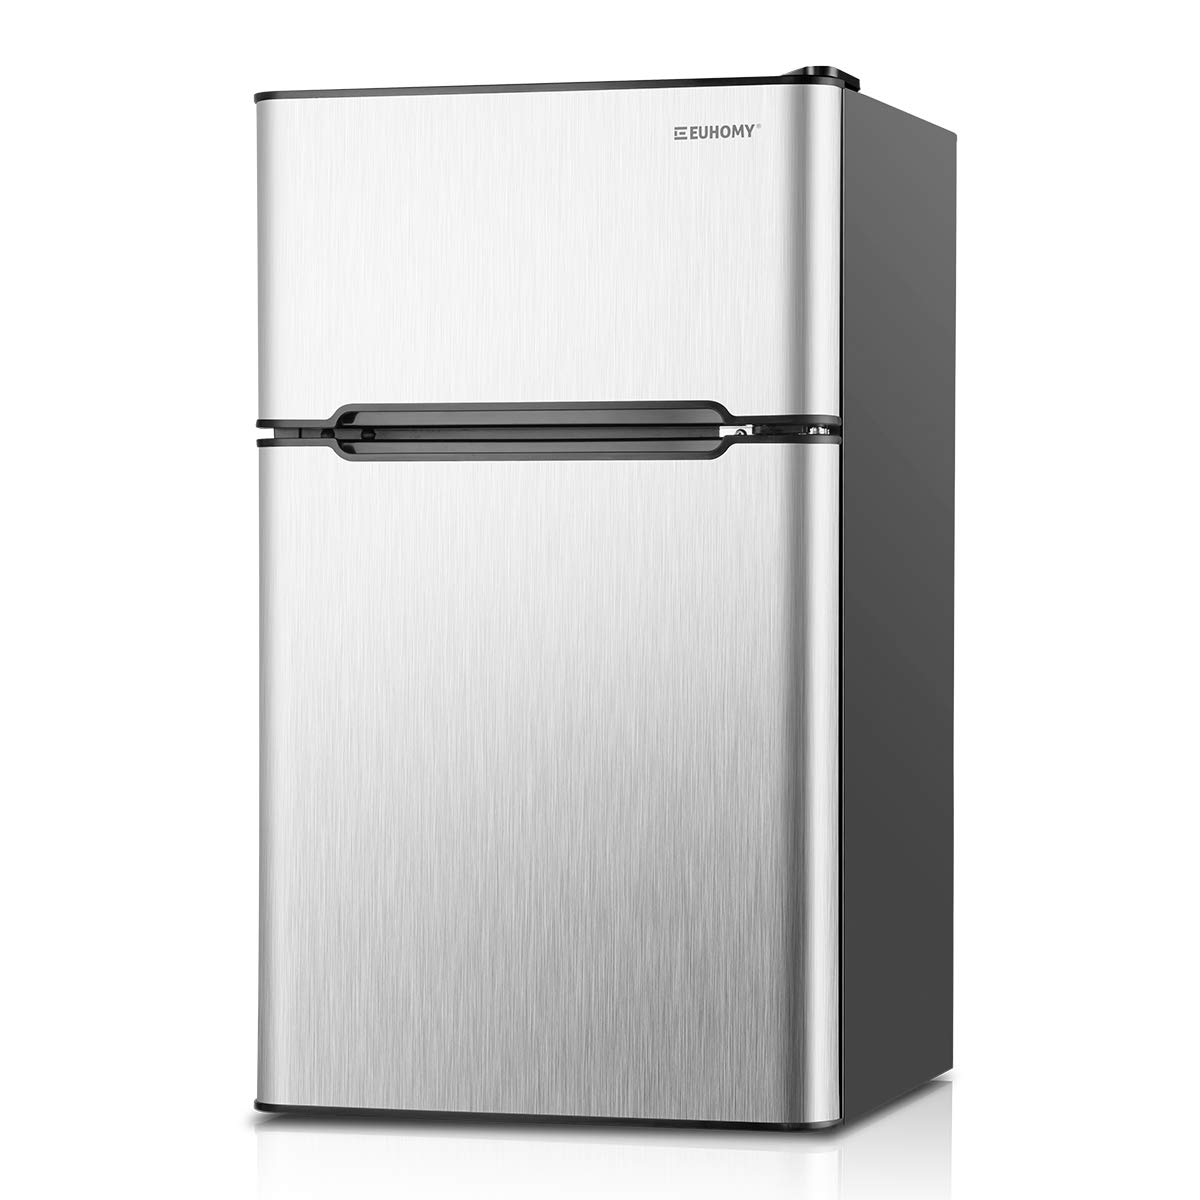 Euhomy Compact Mini Fridge with Freezer, 3.2 Cu.Ft 2-Door Upright Refrigerator with Freezer Ideal Food and Drink Storage Mini Refrigerator for Kitchen, Dorm, Apartment And Office. by E EUHOMY